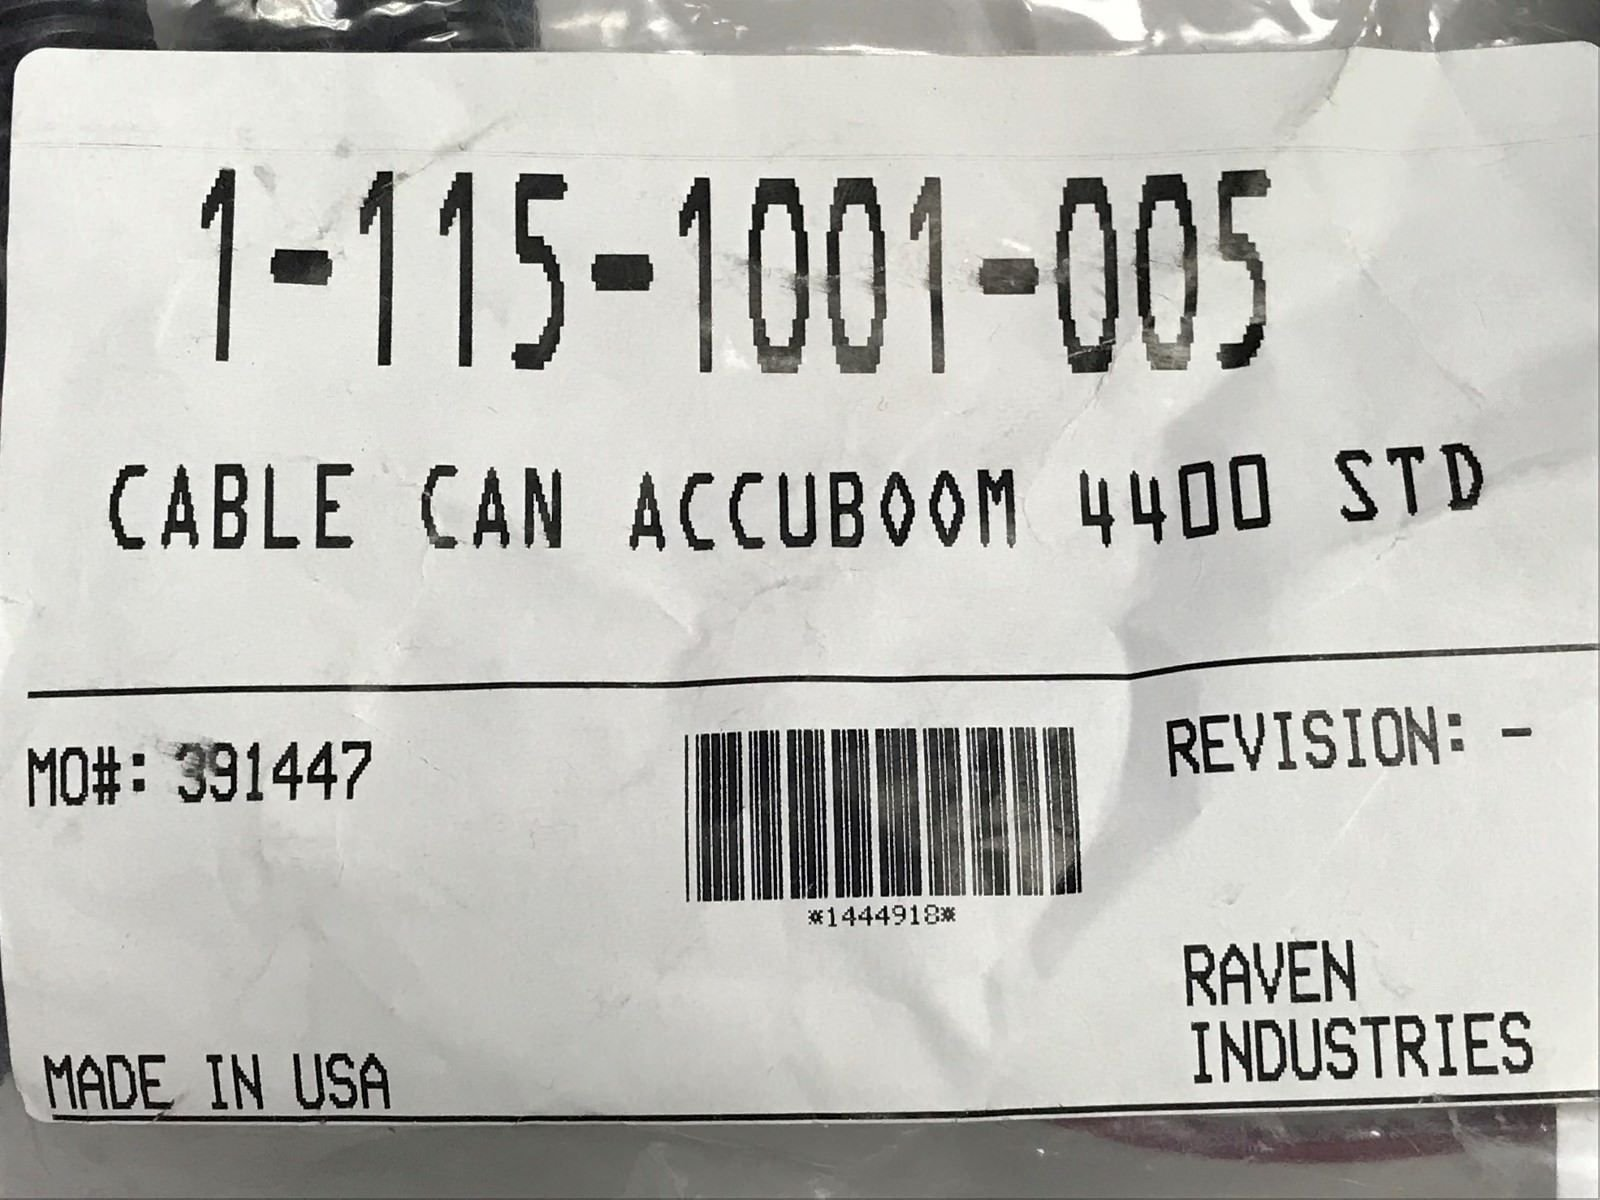 115-1001-005 RAVEN CABLE CAN ACCUBOOM 4400 STD